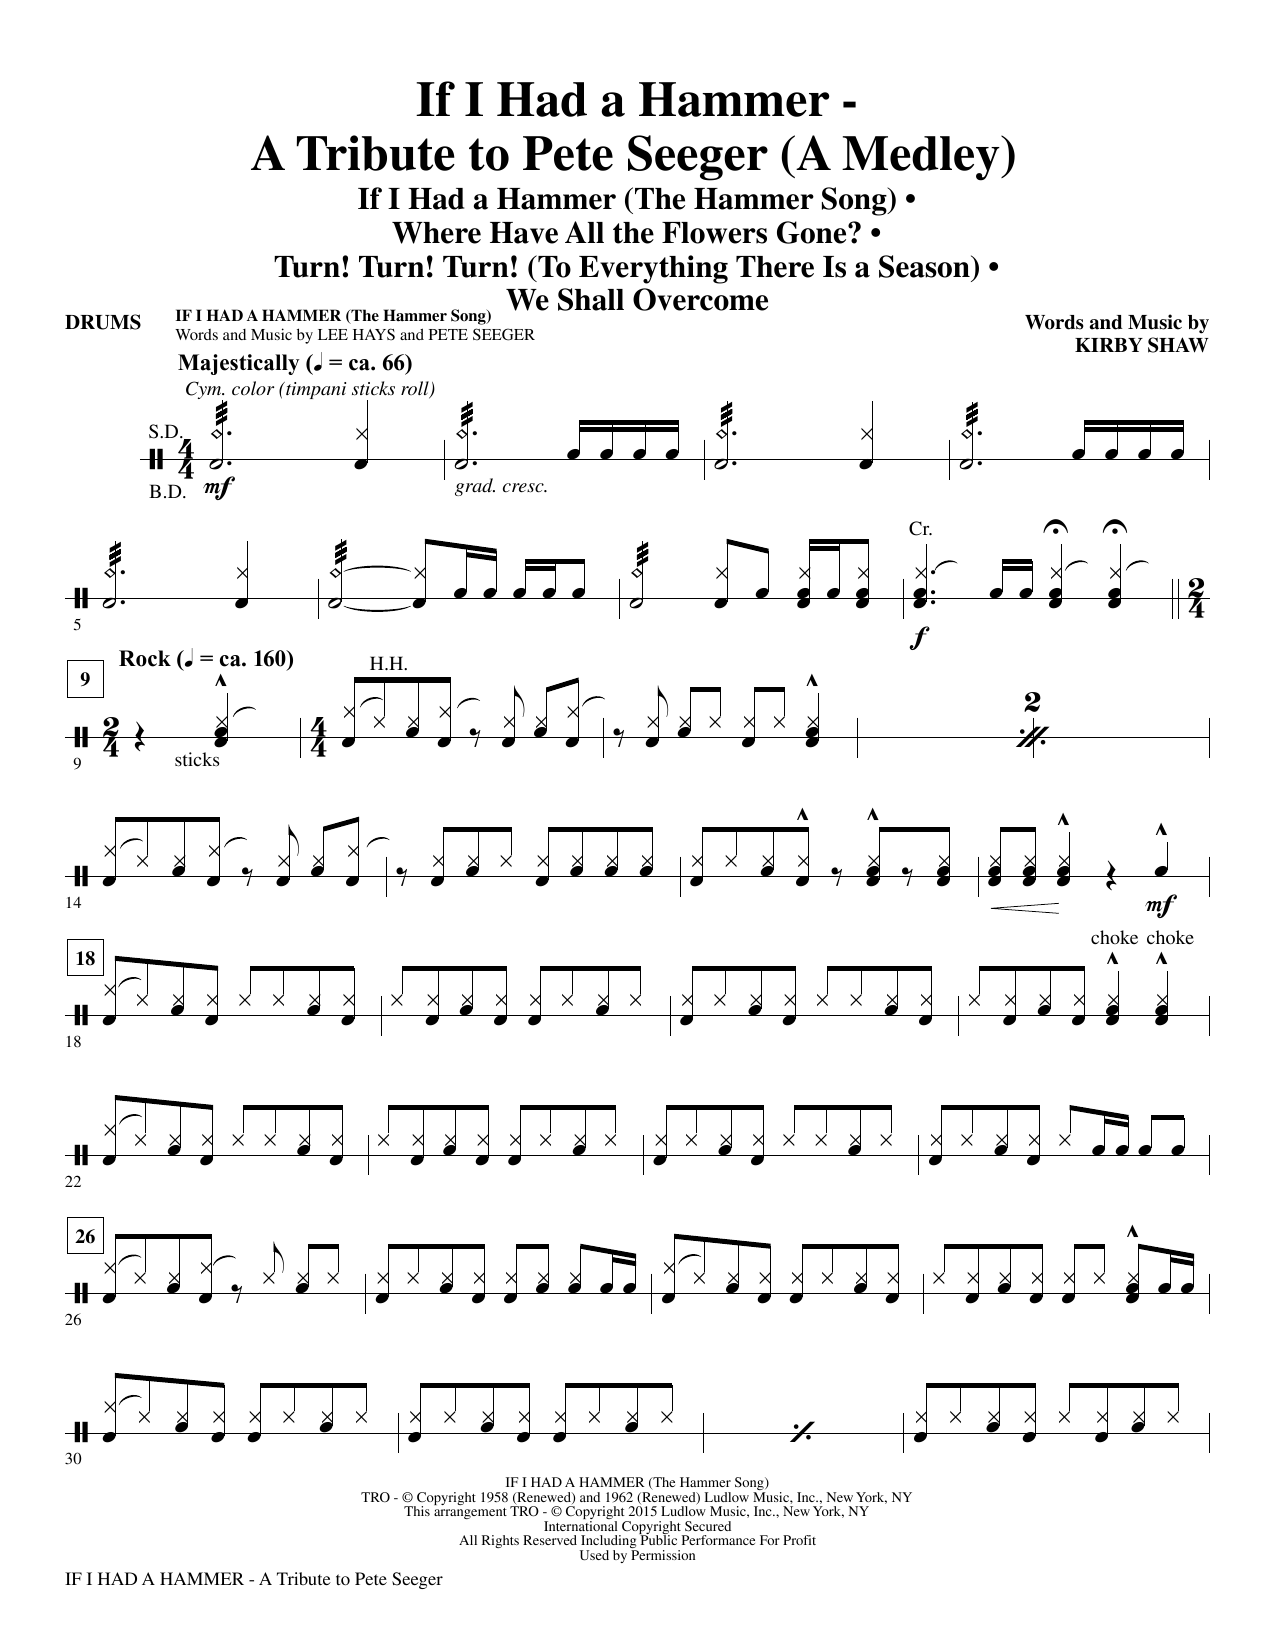 If I Had A Hammer - A Tribute to Pete Seeger - Drums Sheet Music